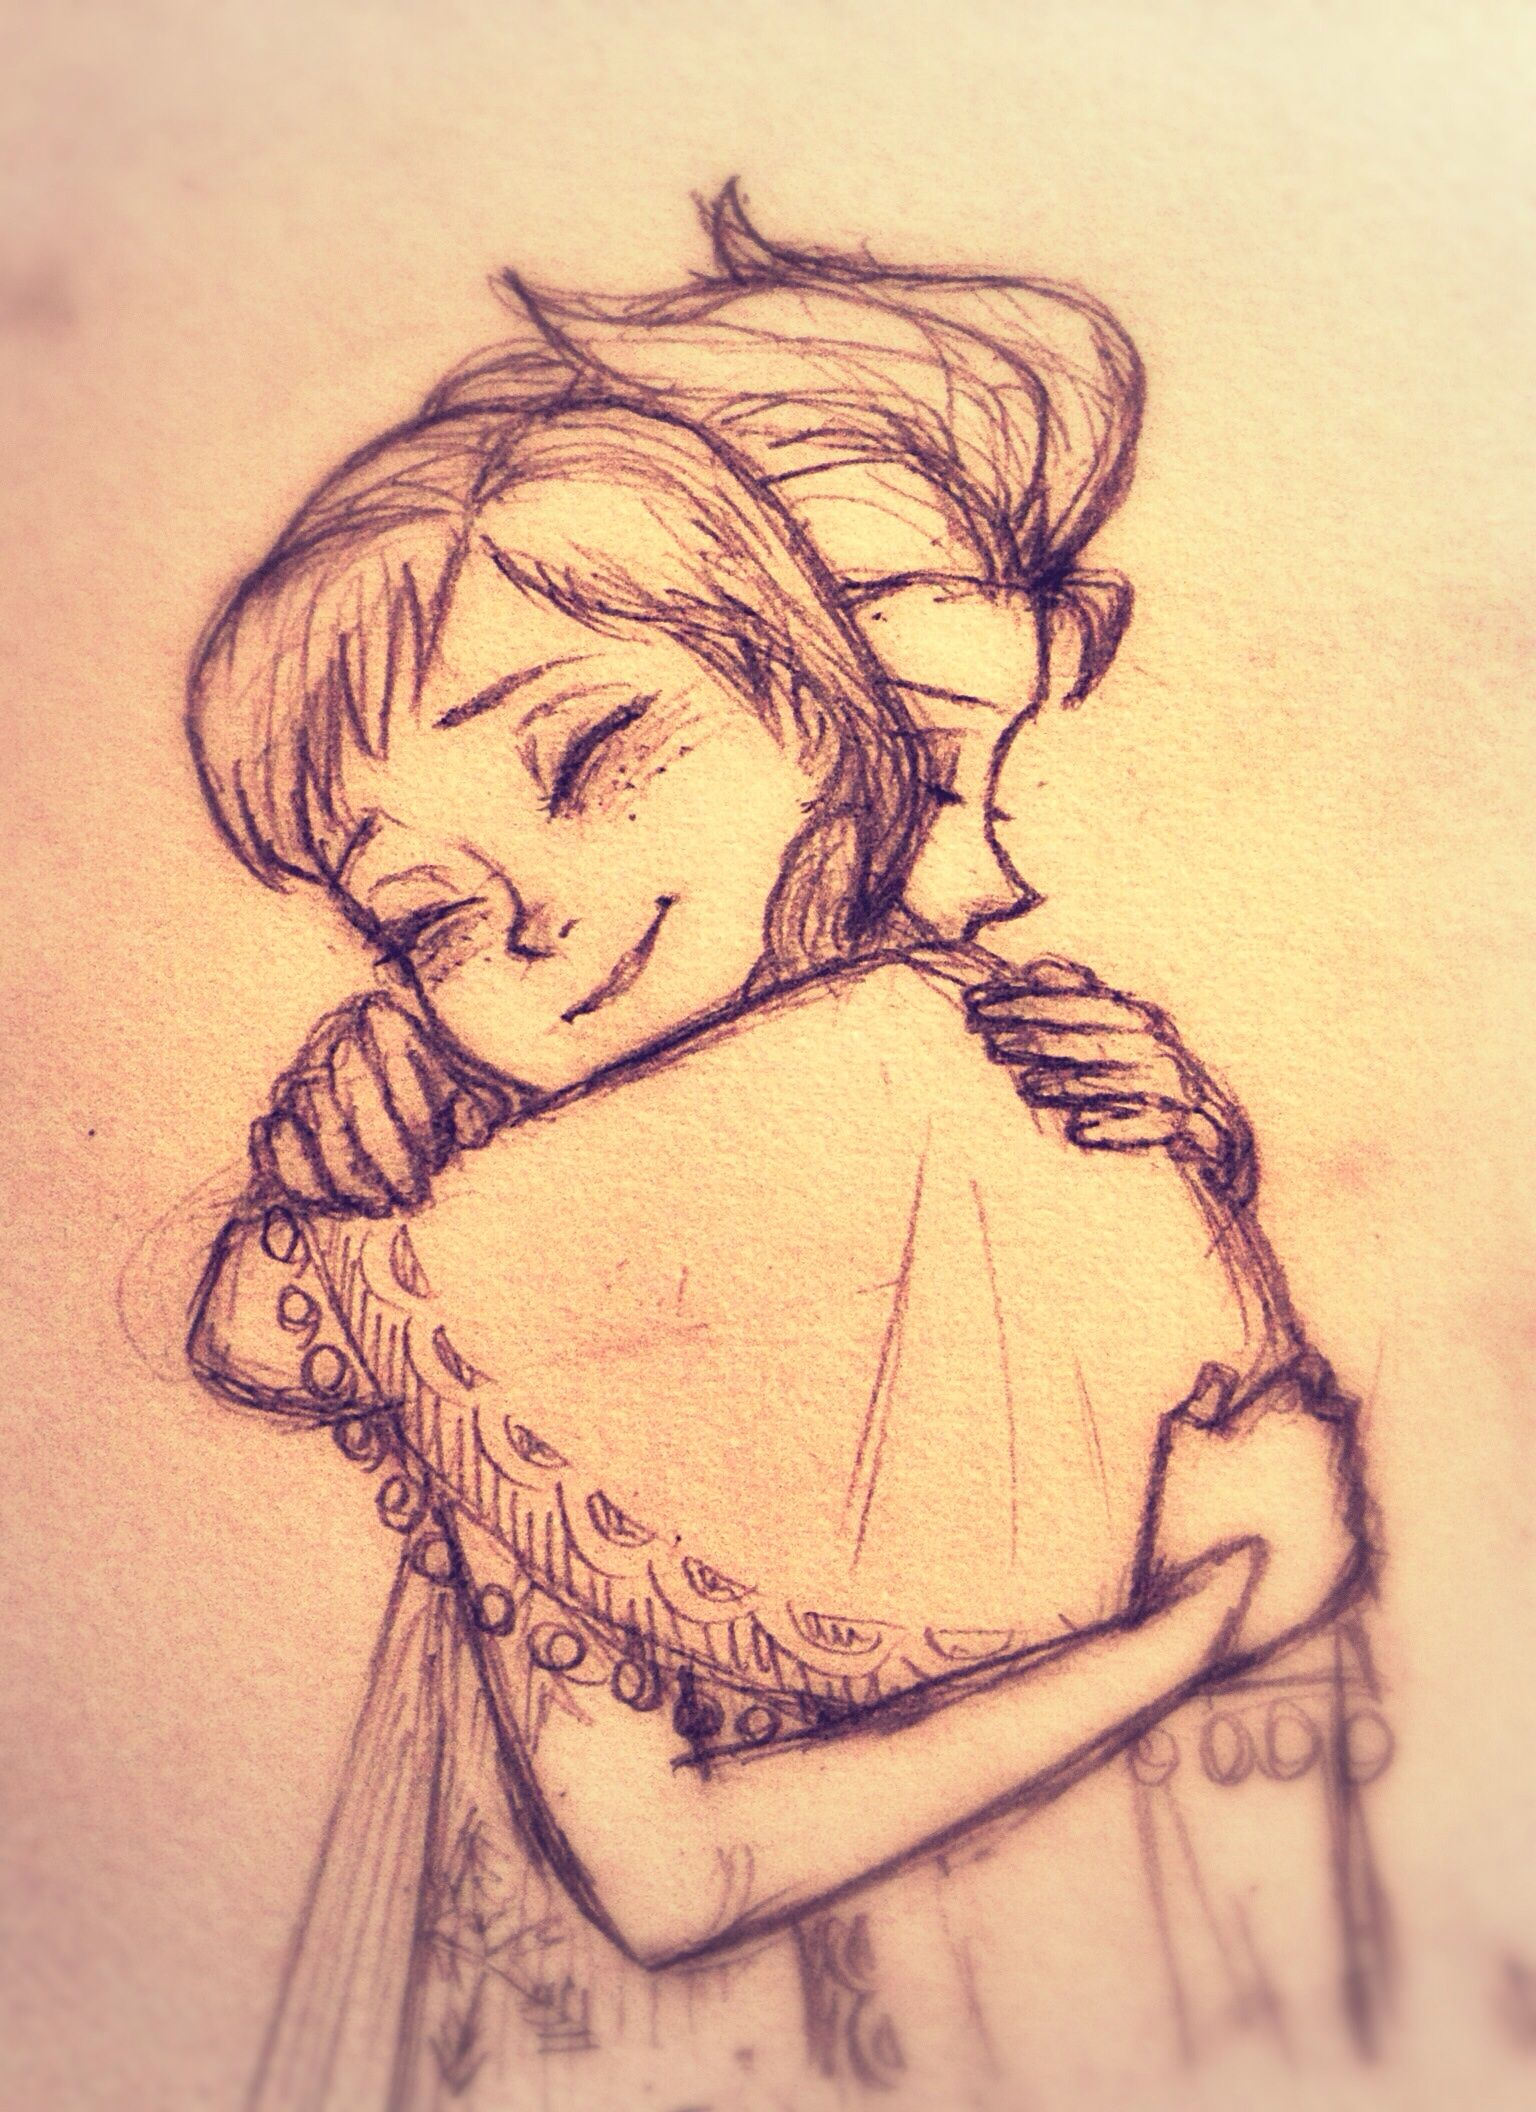 Elsa And Anna Hug The Way Elsa Is Holding Anna Tight Her Hand And Her Expression The Eyes Closed I M In Love With Her Croquis Dessin Croquis Dessin